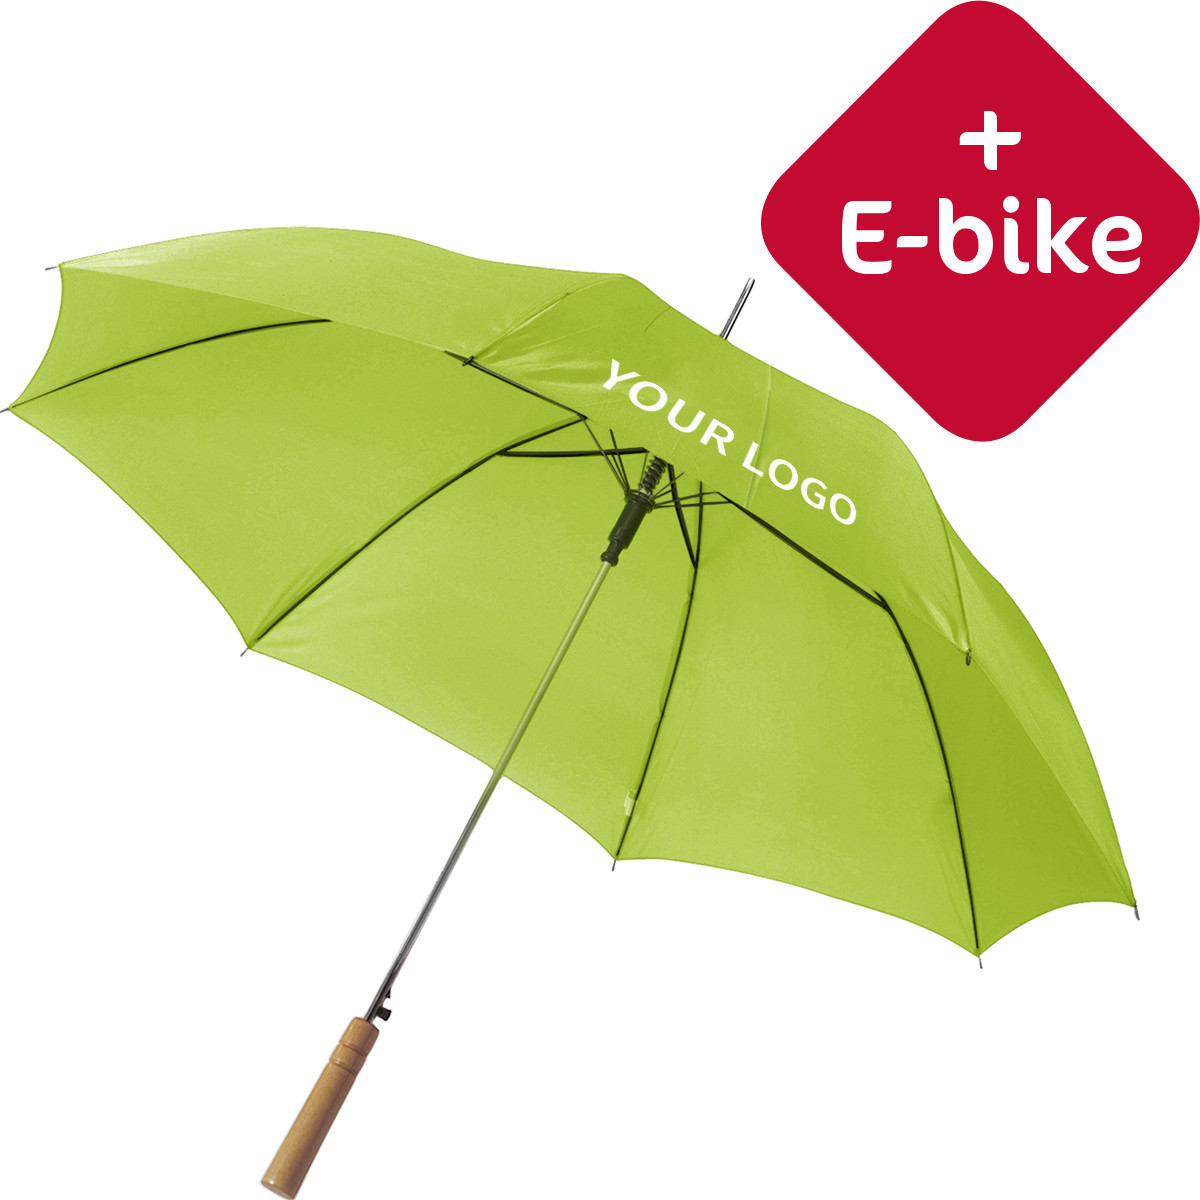 parapluie golf wood avec e bike gratuit imprim avec logo van helden objets publicitaires. Black Bedroom Furniture Sets. Home Design Ideas